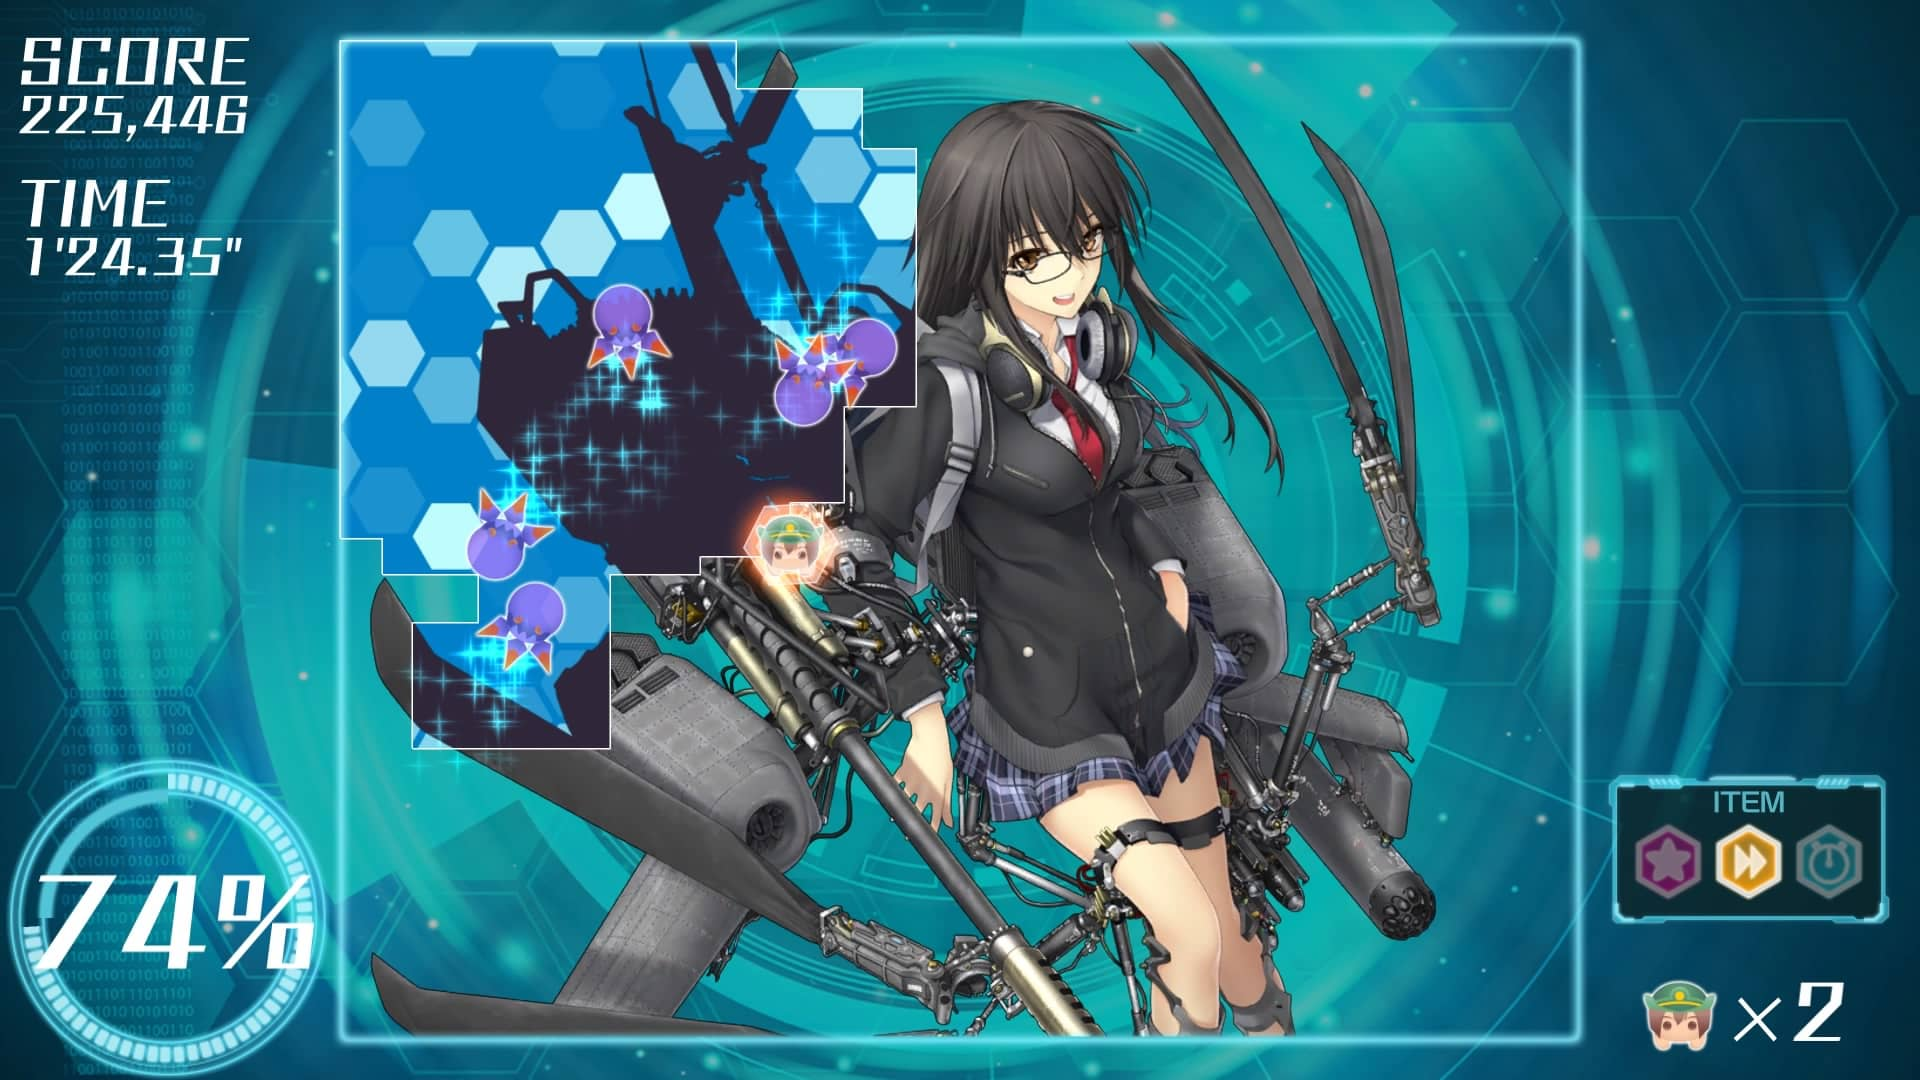 Bishoujo Battle Cyber Panic! Review - Almost